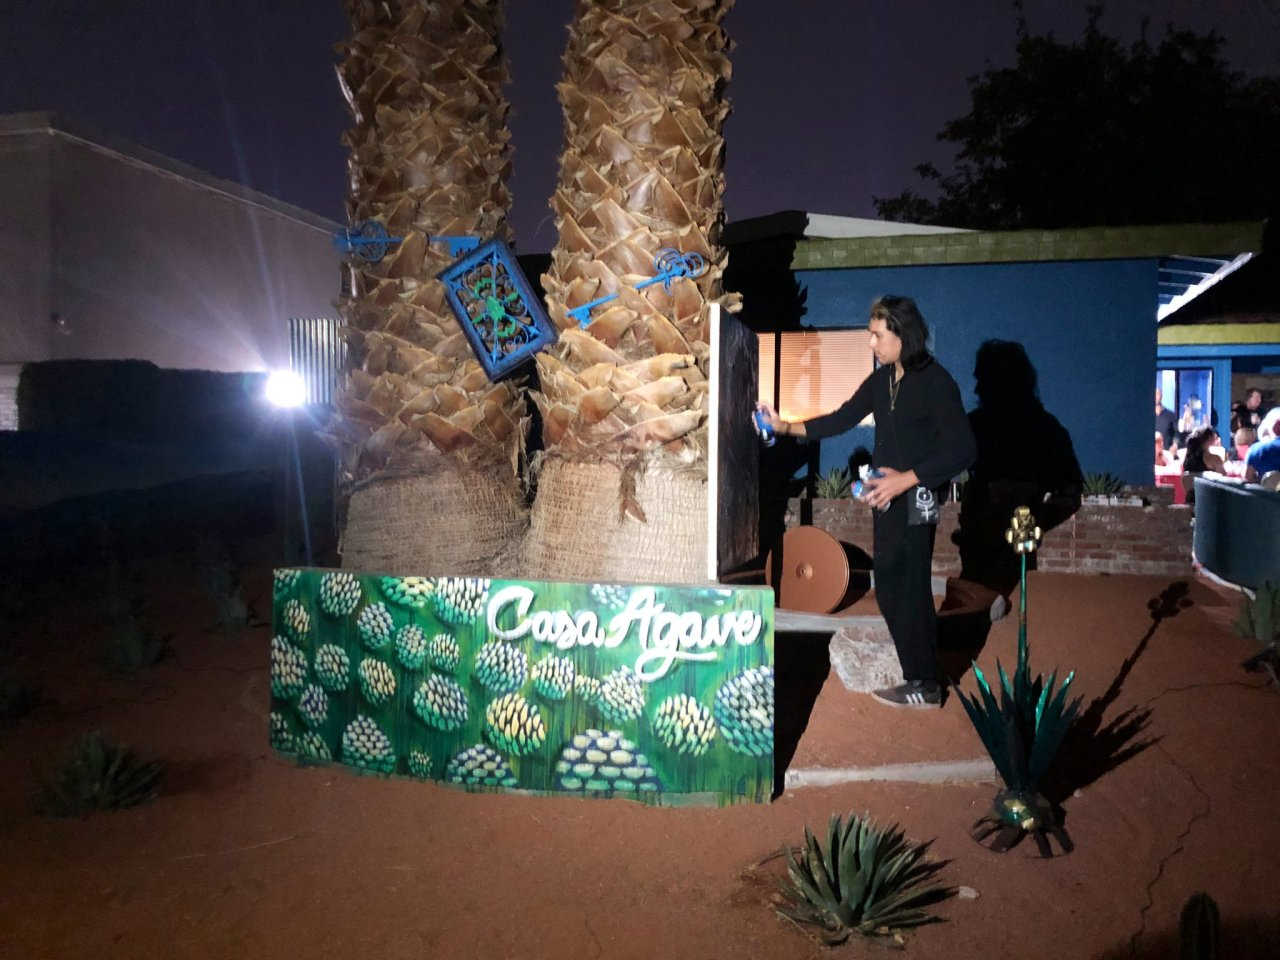 Las Vegas man transforms yard to celebrate, educate people about Mexican Independence Day